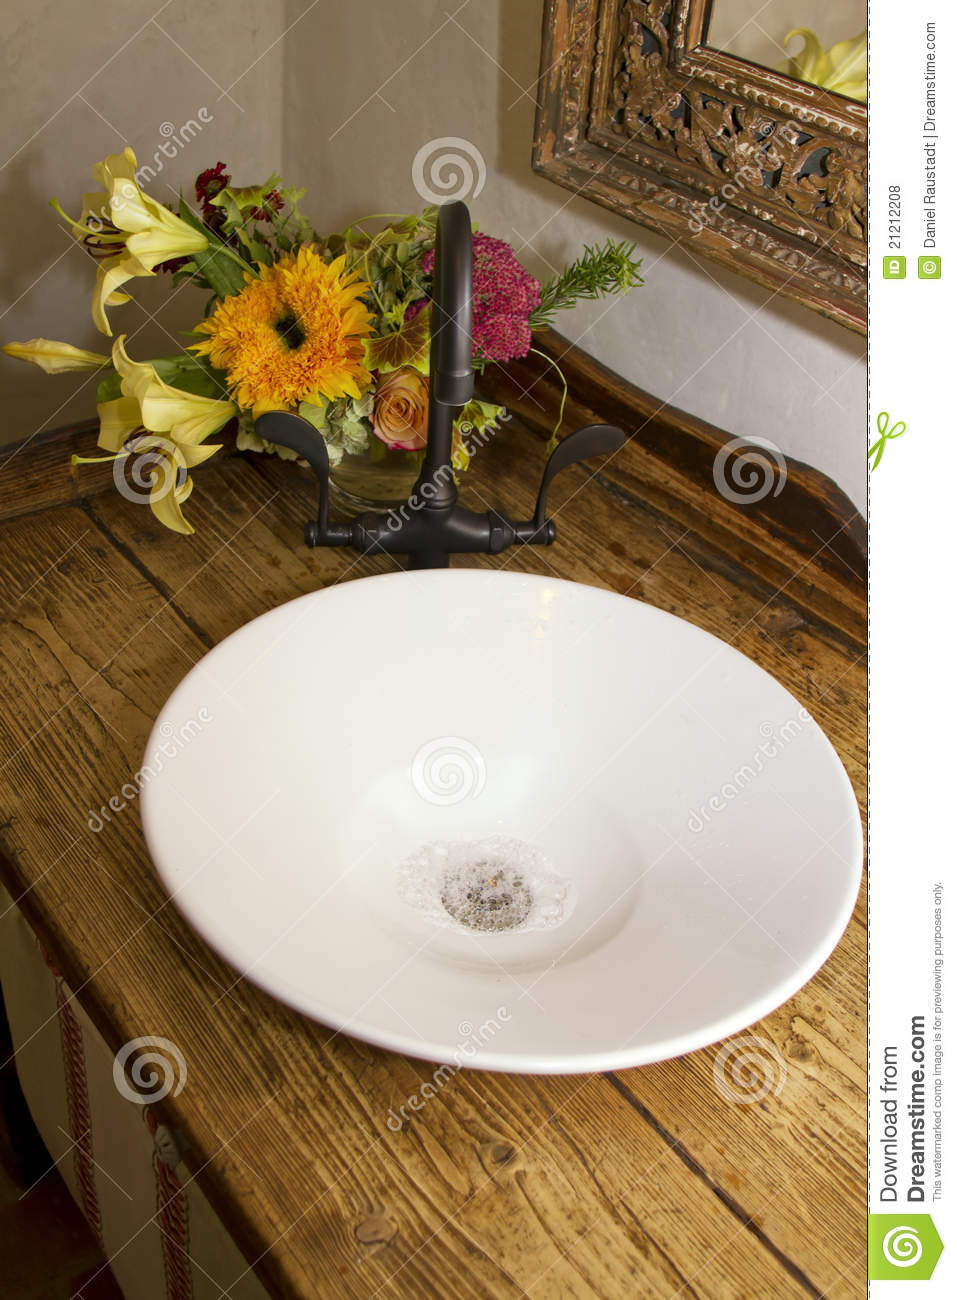 Picture of: Retro Bathroom Bowl Sink Faucet And Counter Stock Photo Image Of Cabinet Basin 21212208